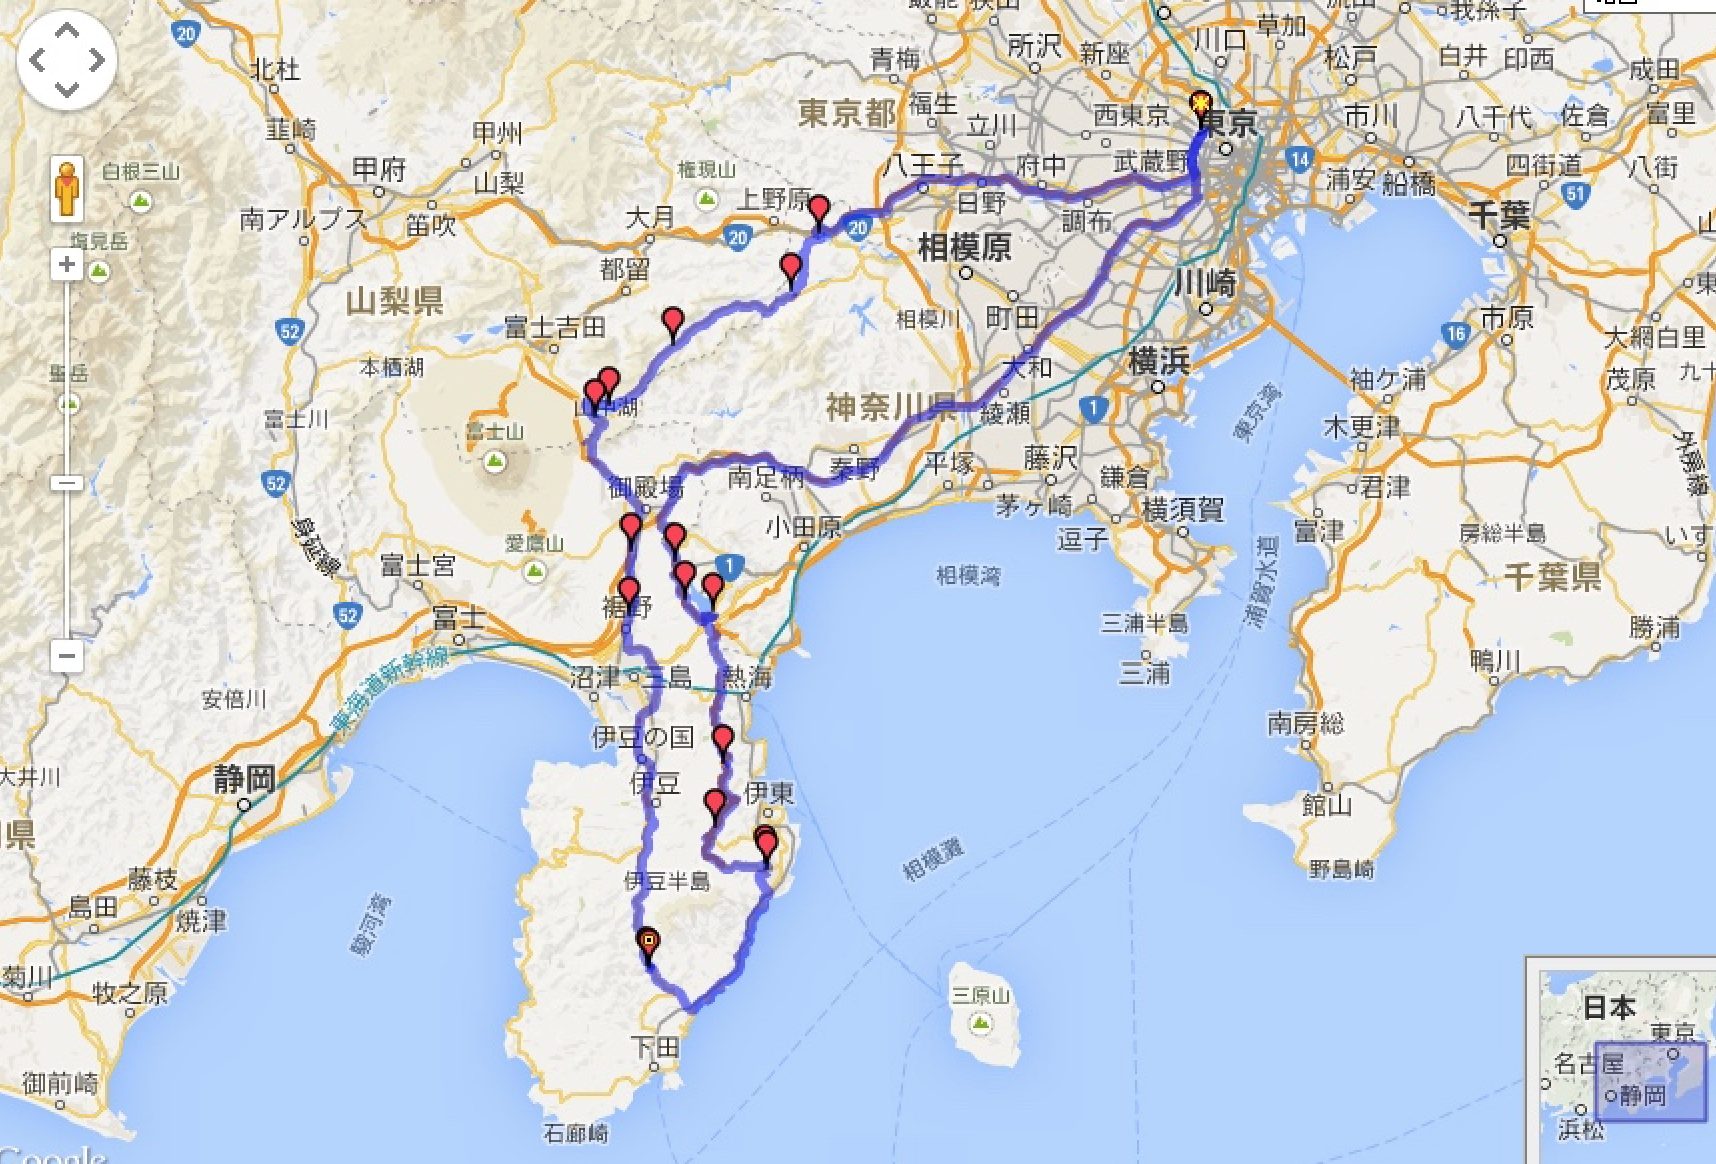 My route- Day one: straight out west to Fuji and then down to the Amagiso Onsen nestled right under a corkscrew highway  Day two: down along the coast to Shimoda, up- to Mount Omuro, along the famous Izu & Hakone Skyline roads and then North and back to Tokyo + amazing stops along the way